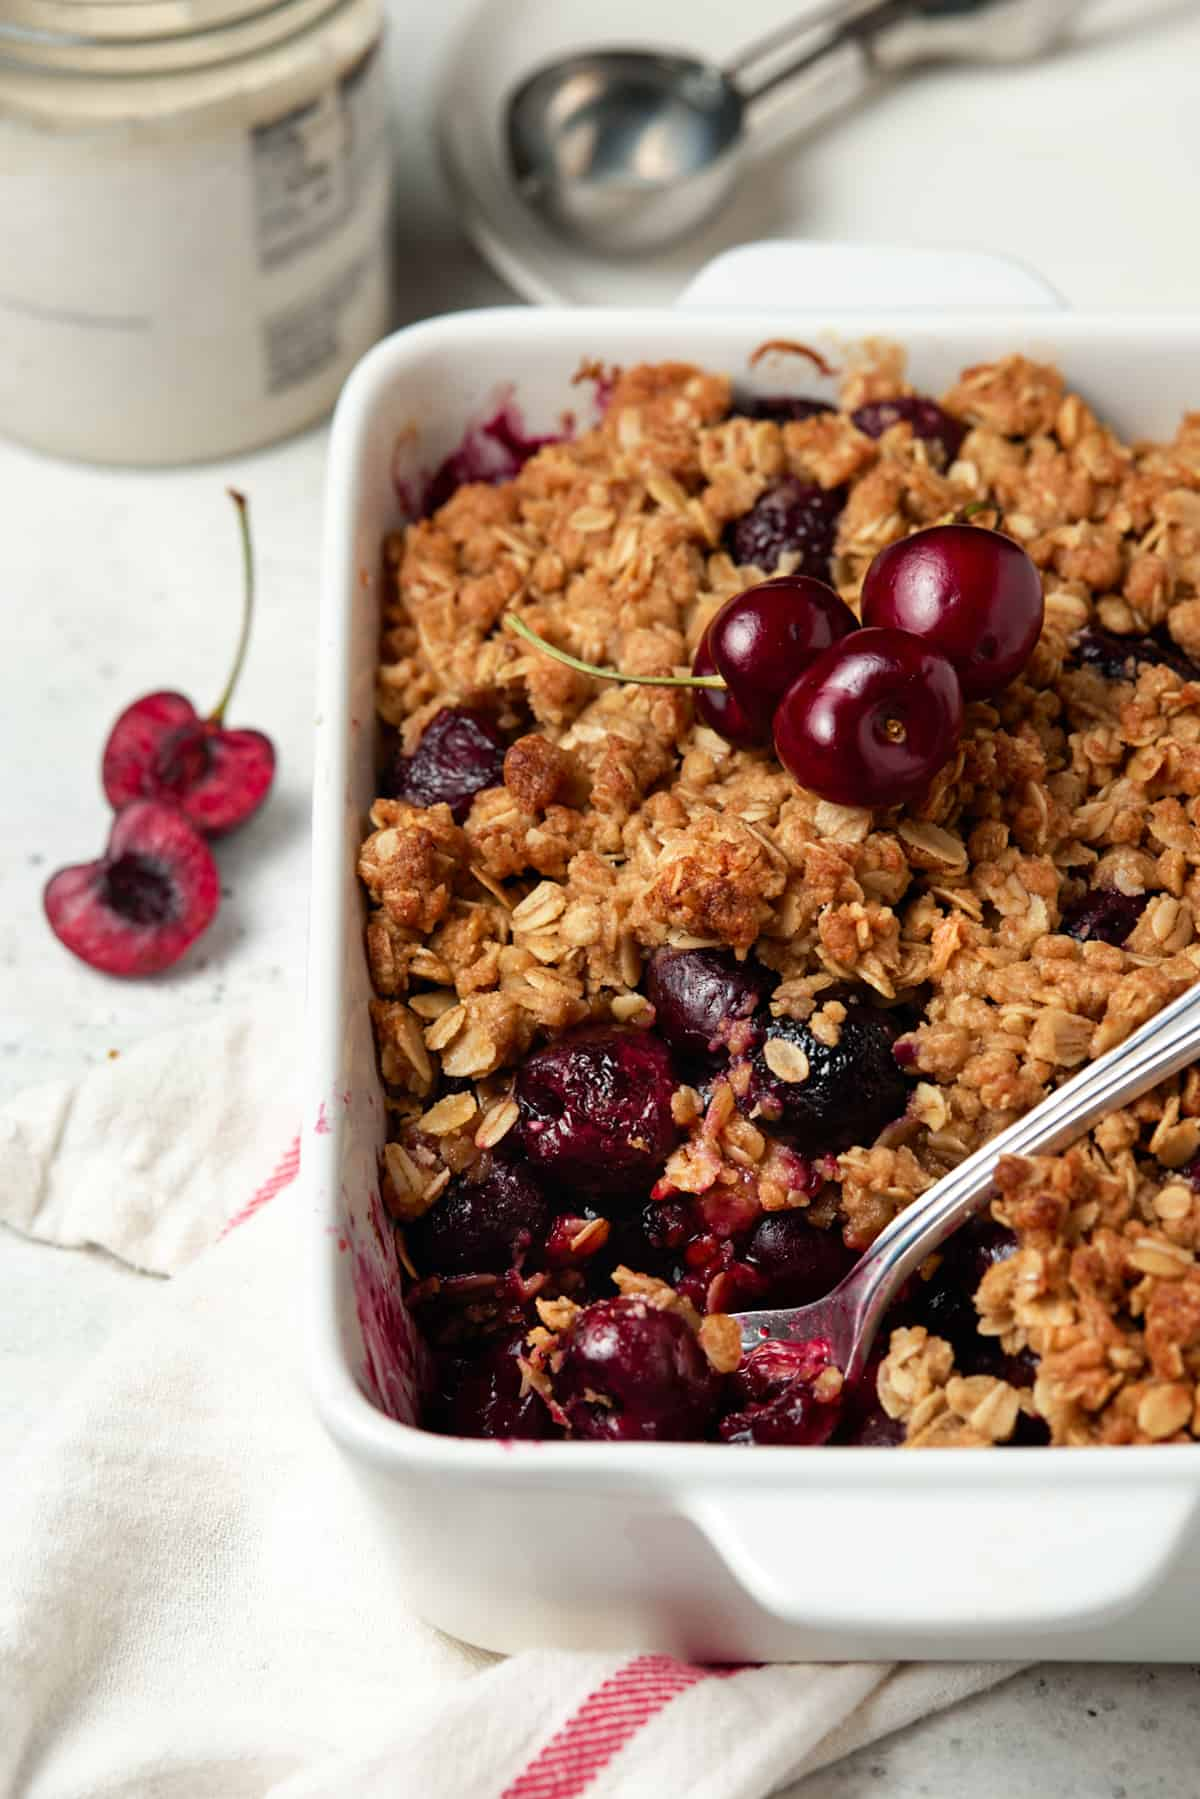 White casserole dish of baked cherry crisp with serving removed.